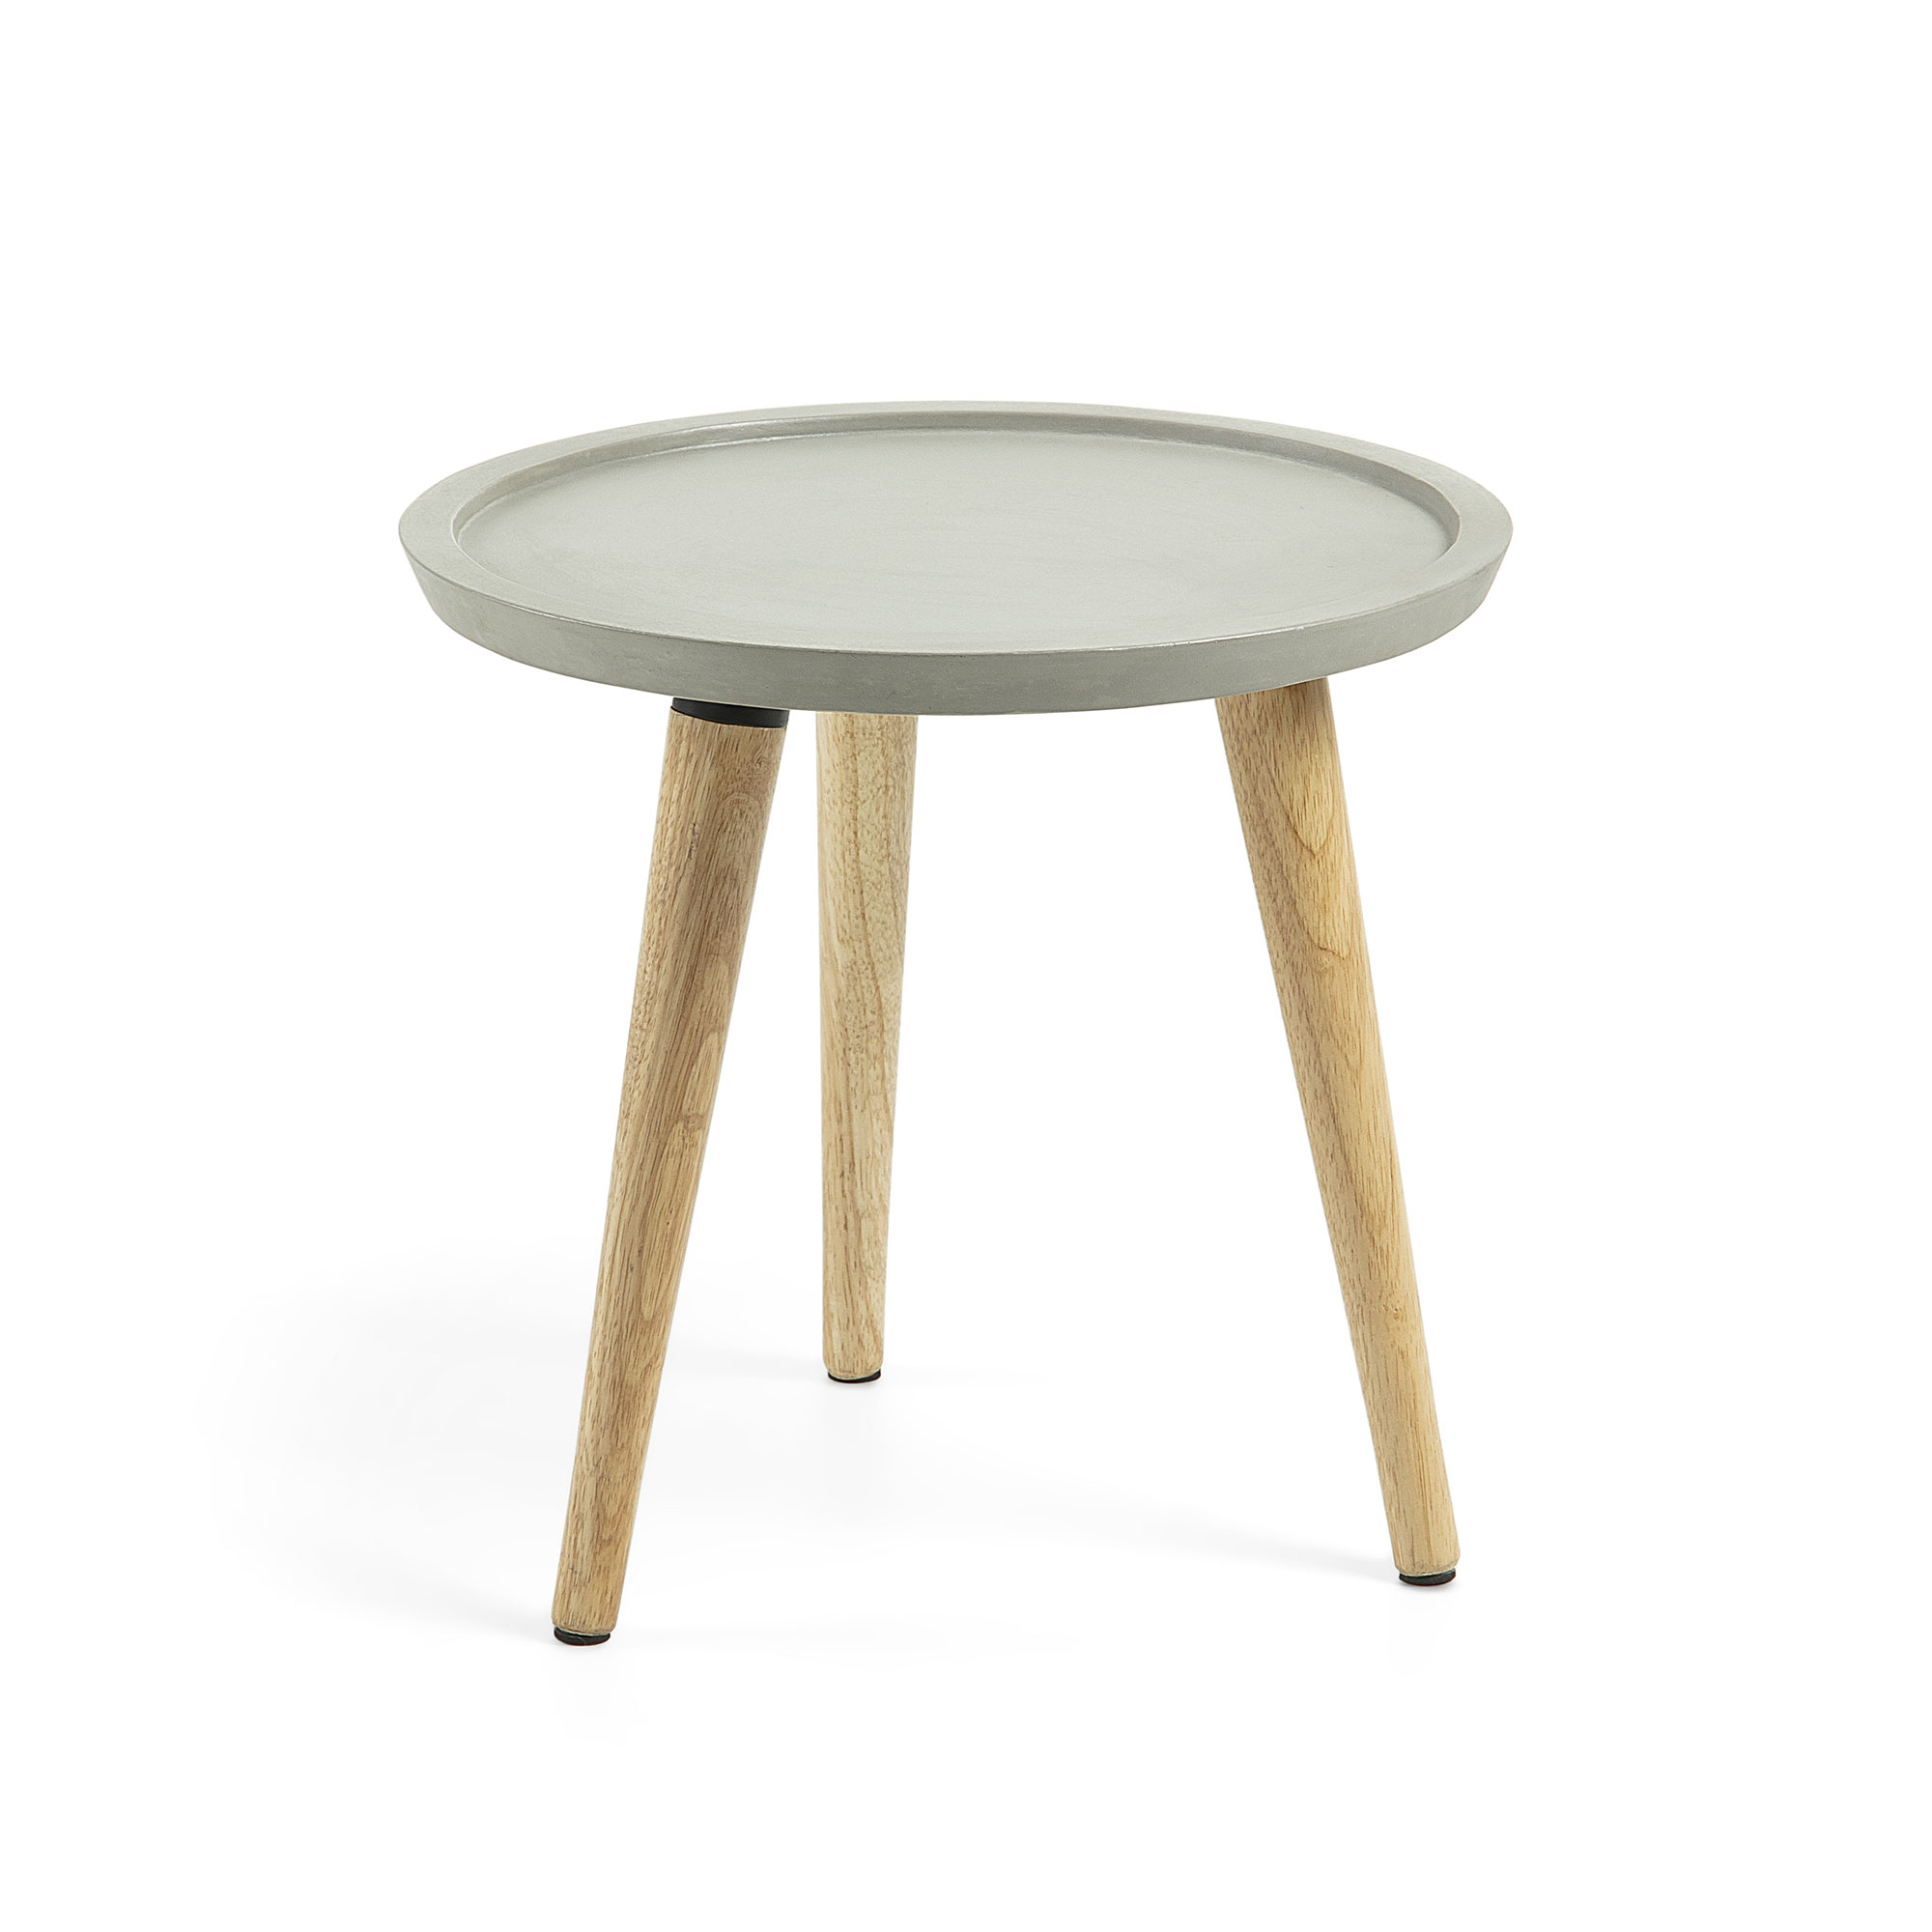 Kave home - table d'appoint lucy Ø 40 cm